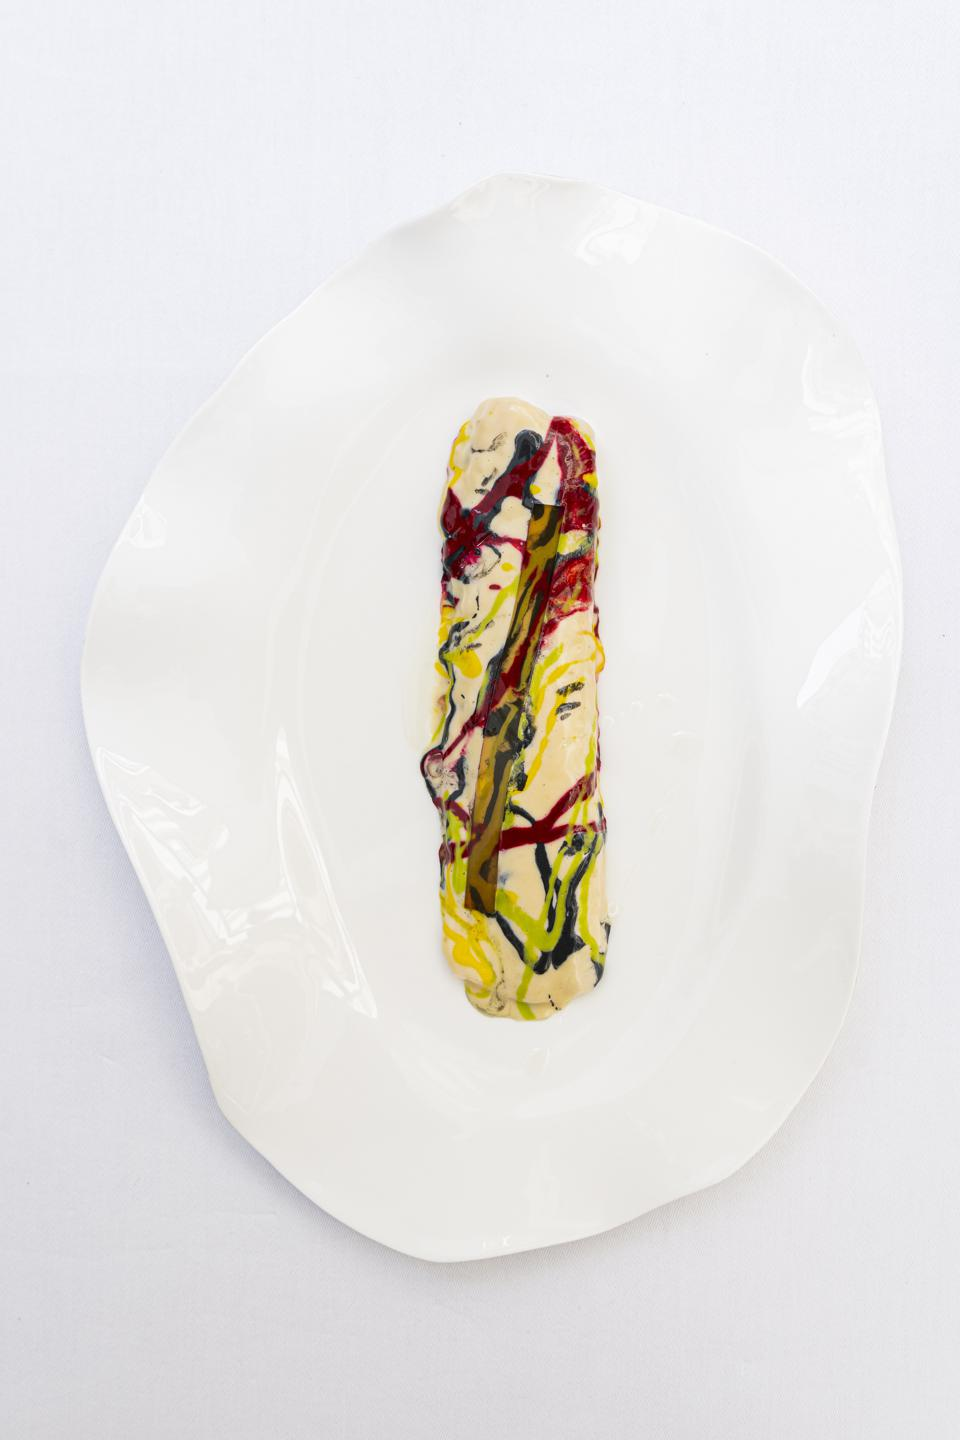 Akrame's signature Jackson Pollock sole, where the Dover sole filet is used as a canvas, with three differently-colored sauces dripped on it